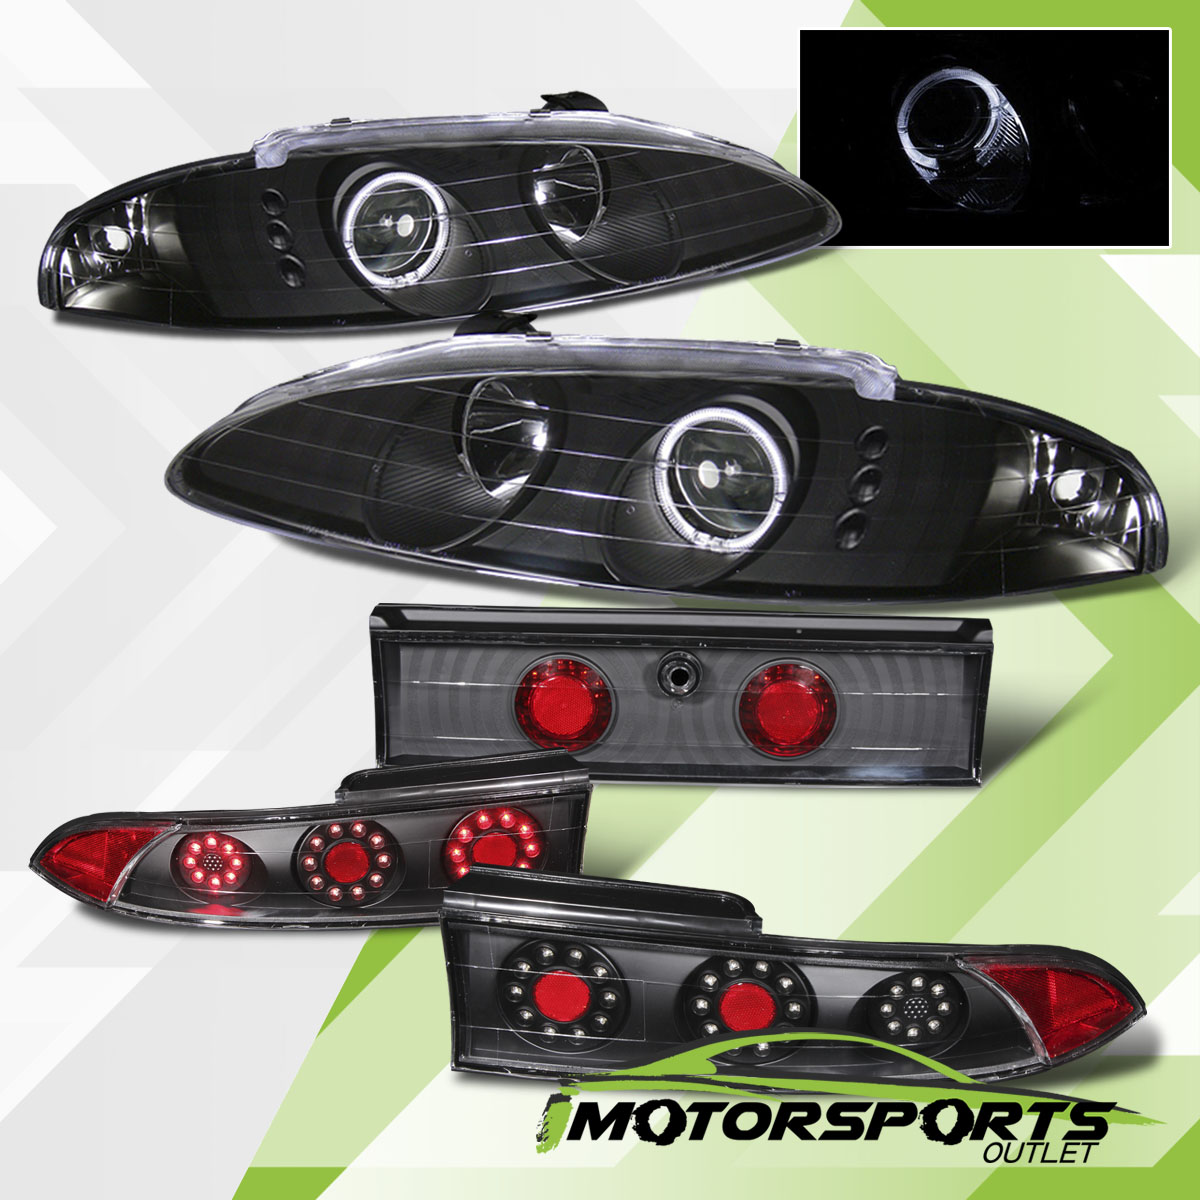 hight resolution of details about 95 96 eclipse blk halo projector headlights led tail lights brake lamps